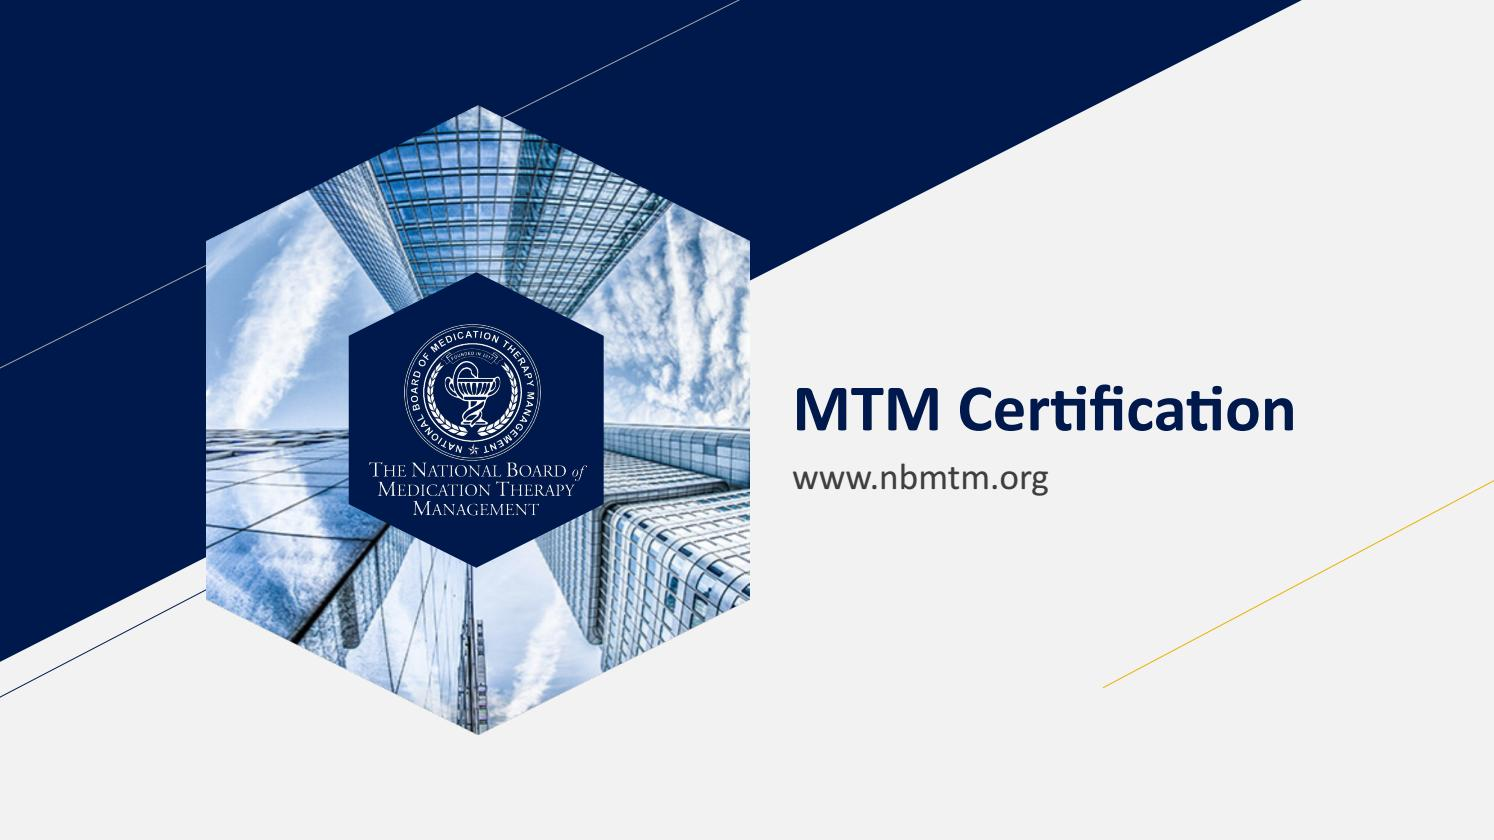 Mtm Certification By Steve Erickson Issuu